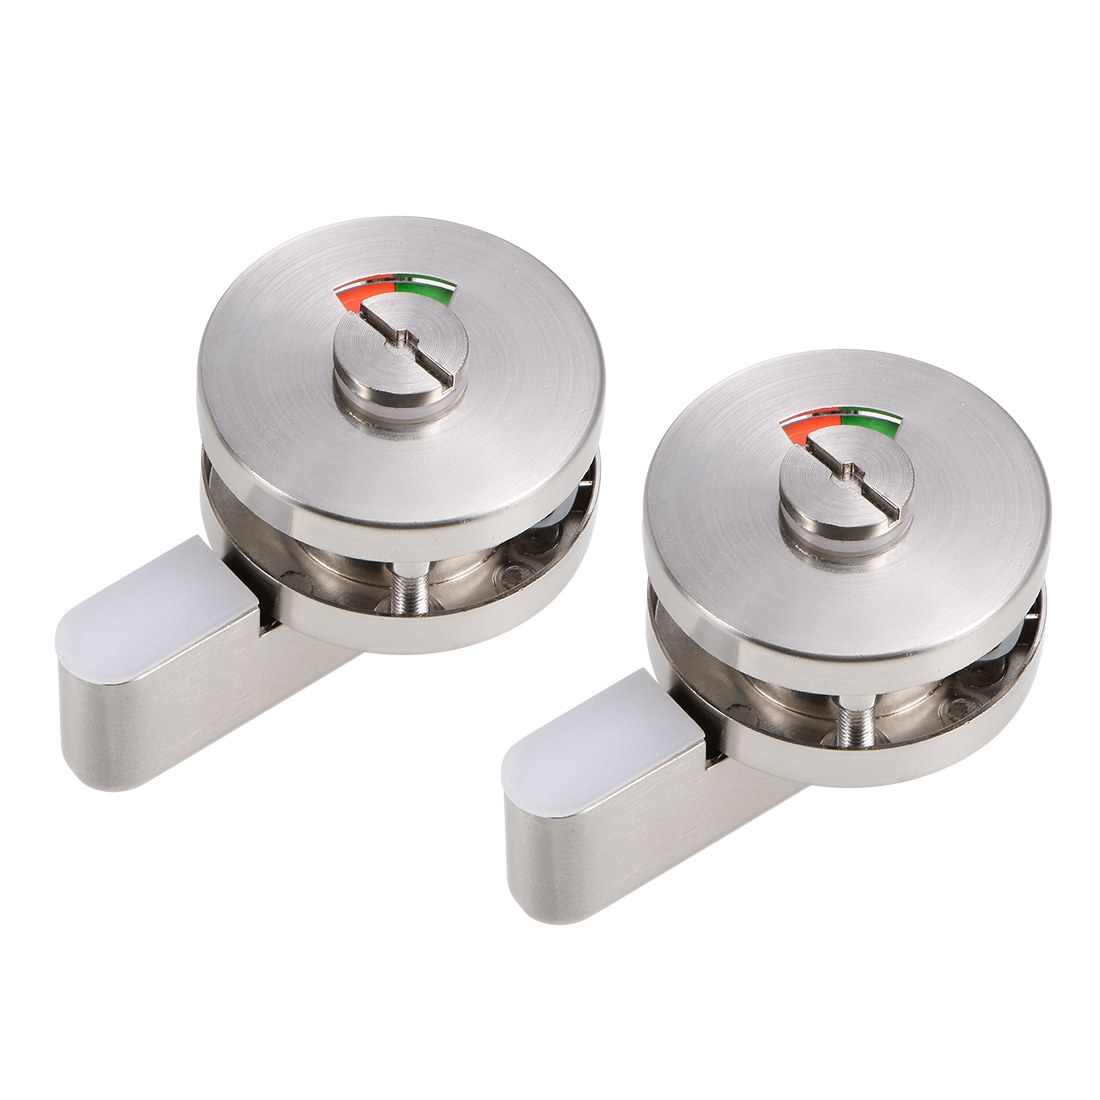 Privacy Indicator Door lock 52mm Dia Stainless Steel for Public Toilet 2 Pcs